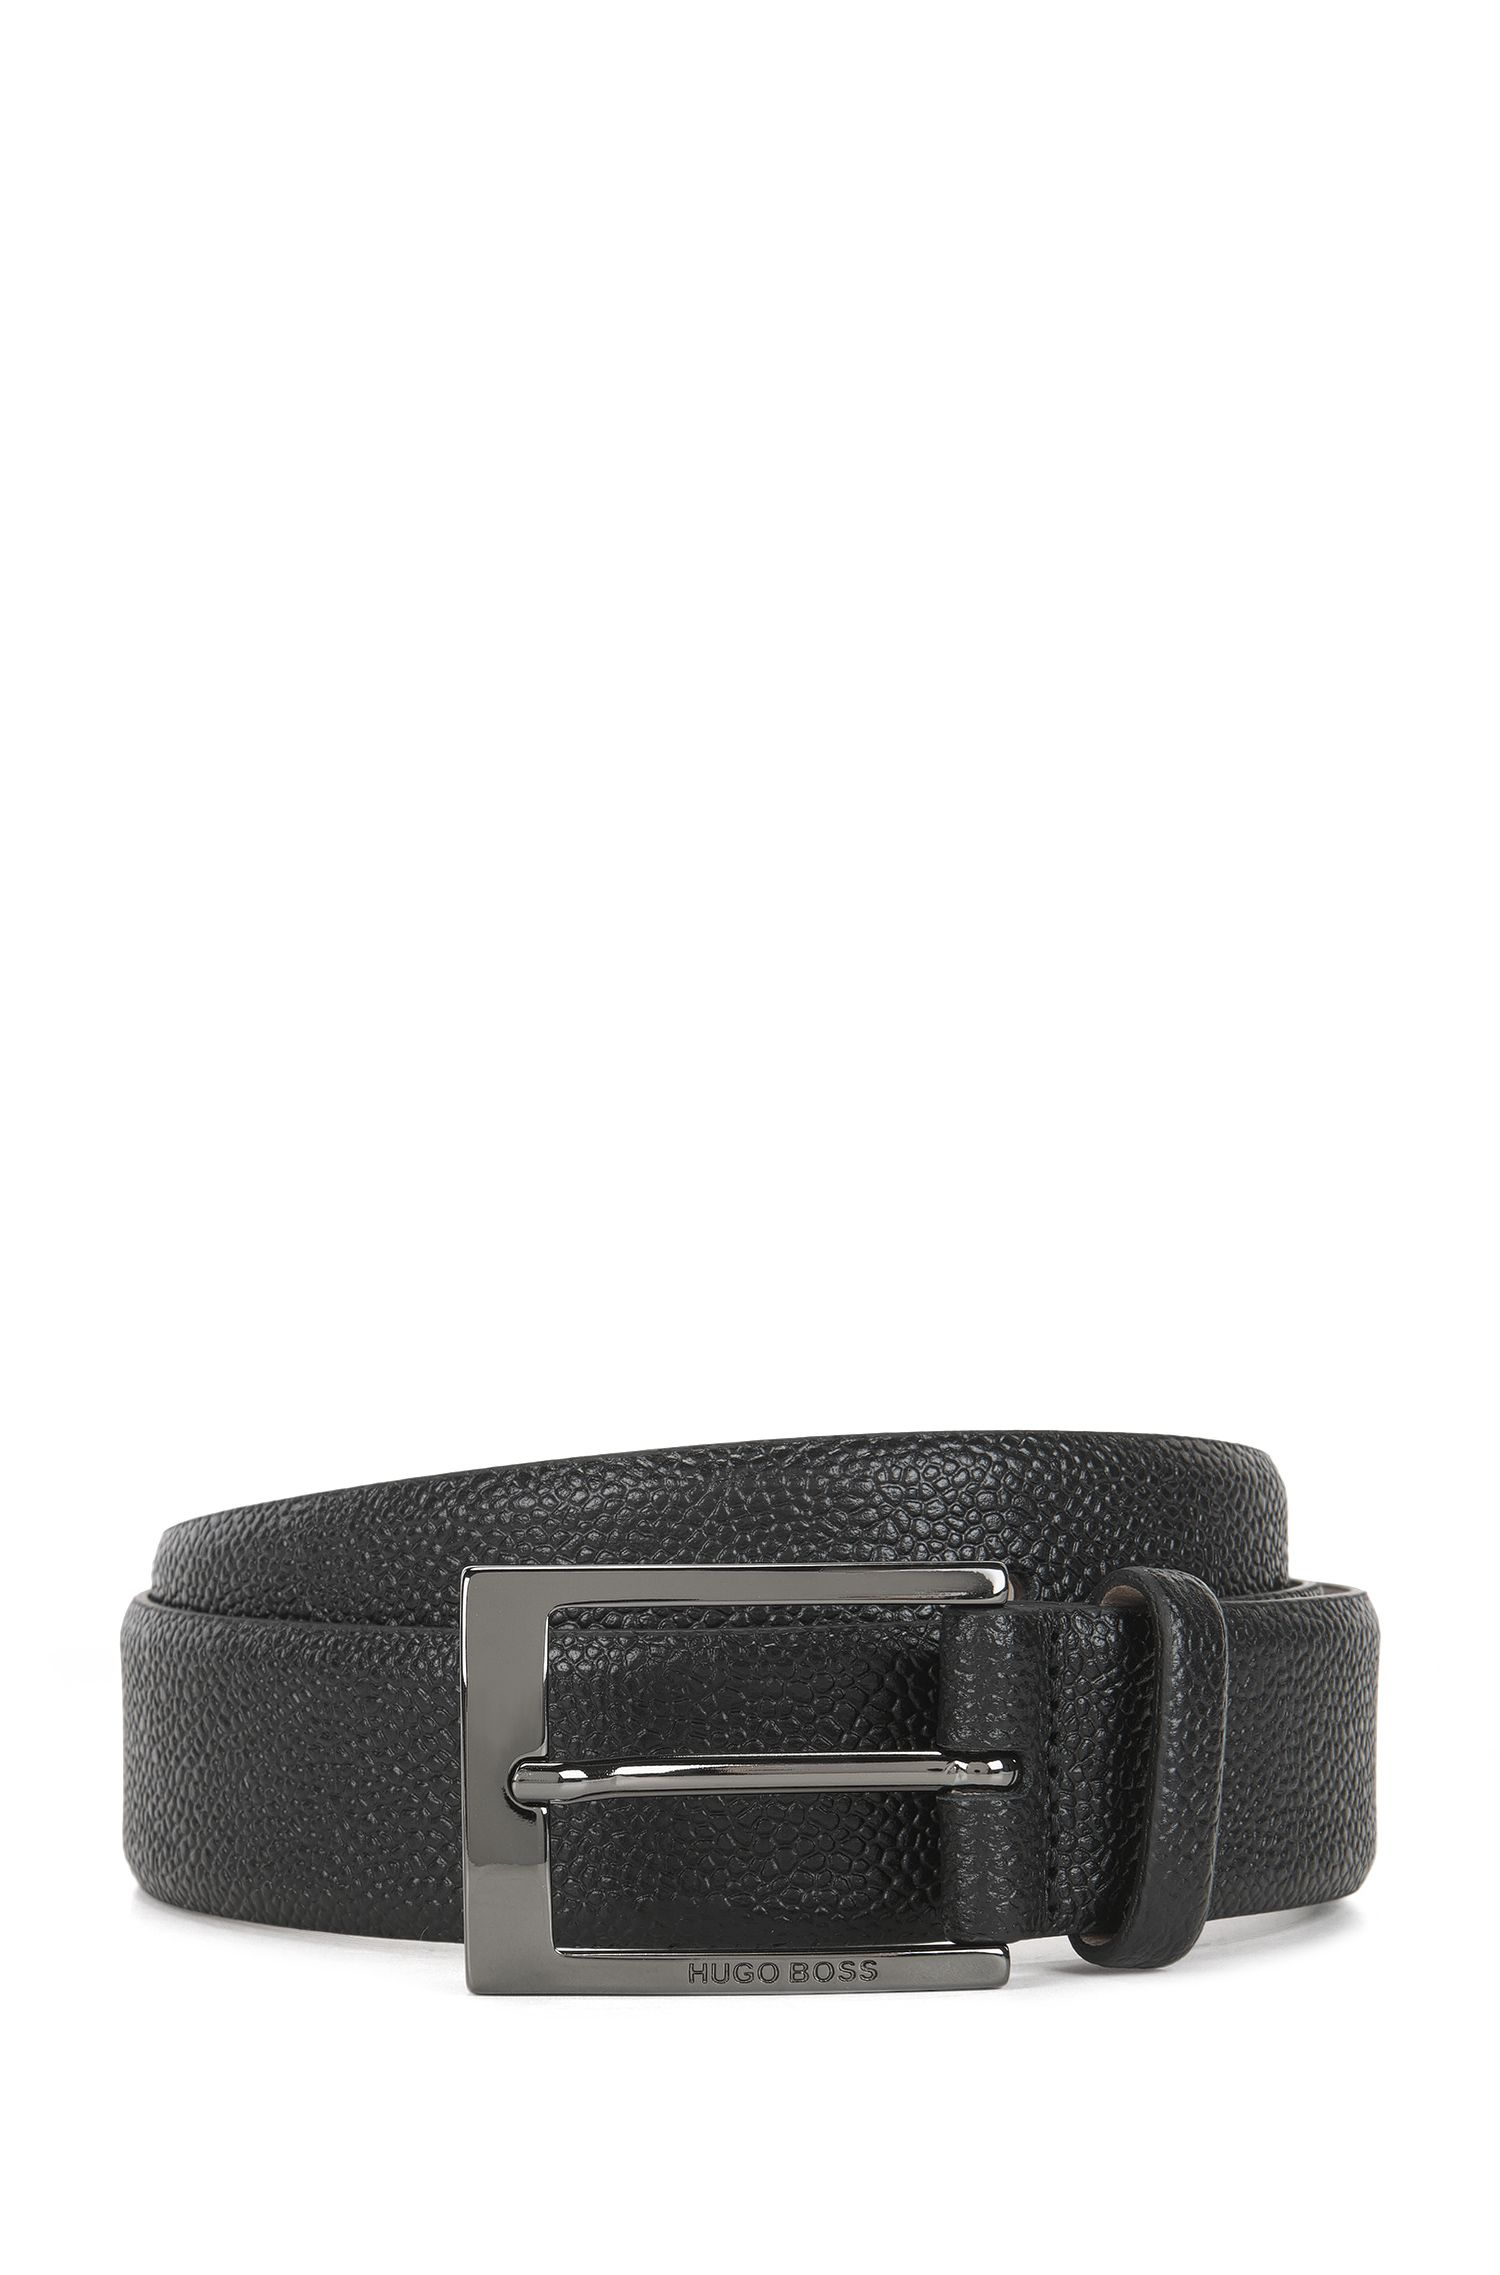 Grainy printed leather belt with nubuck lining